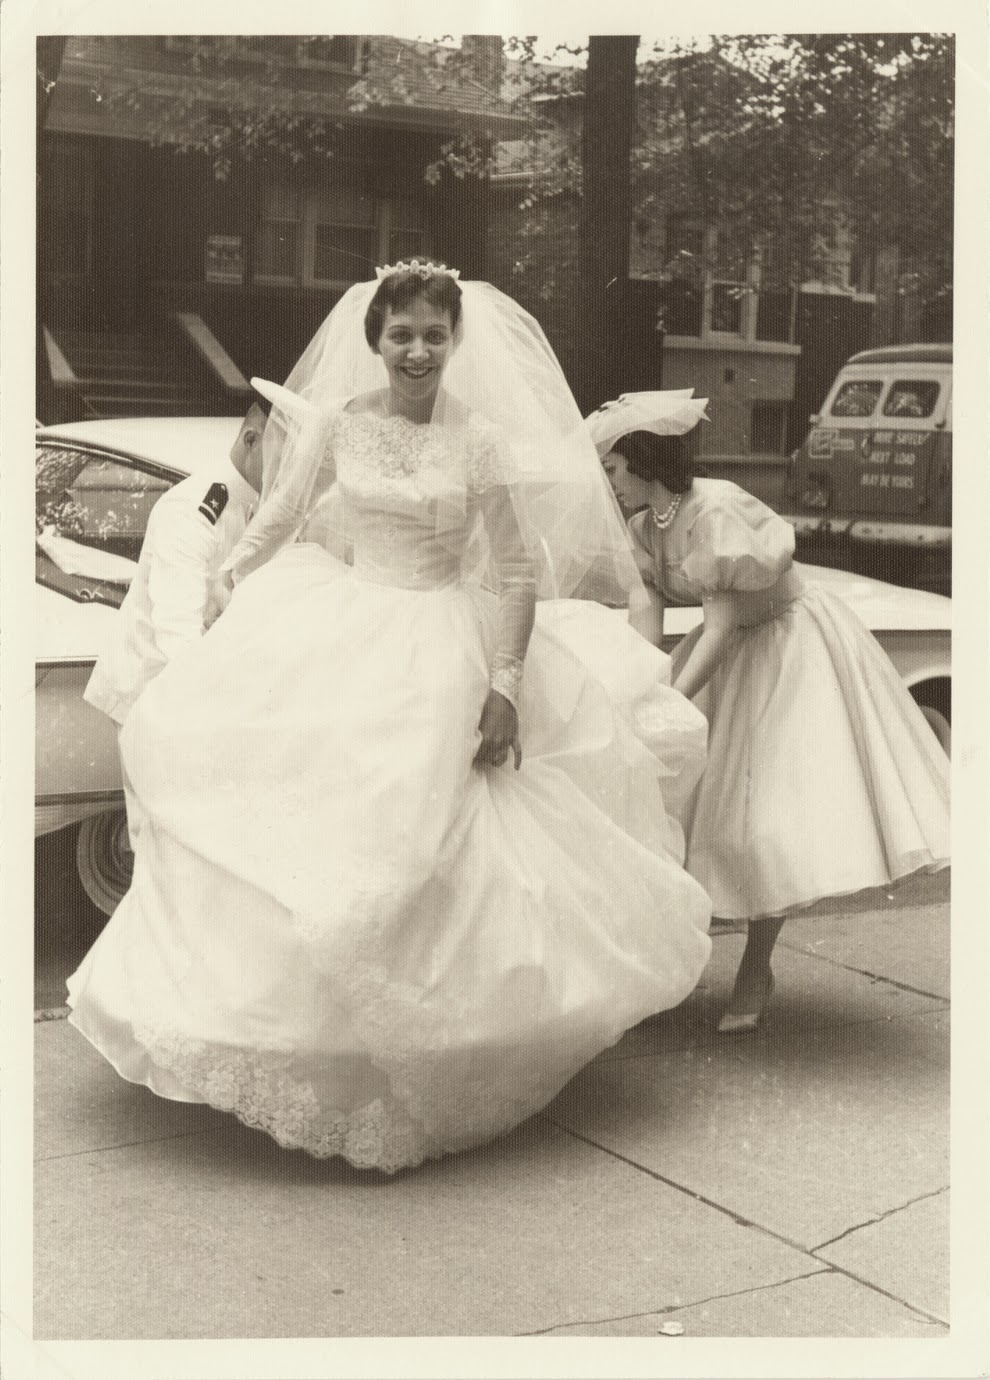 wedding dress 60s adorable real vintage wedding photos from the 1960s